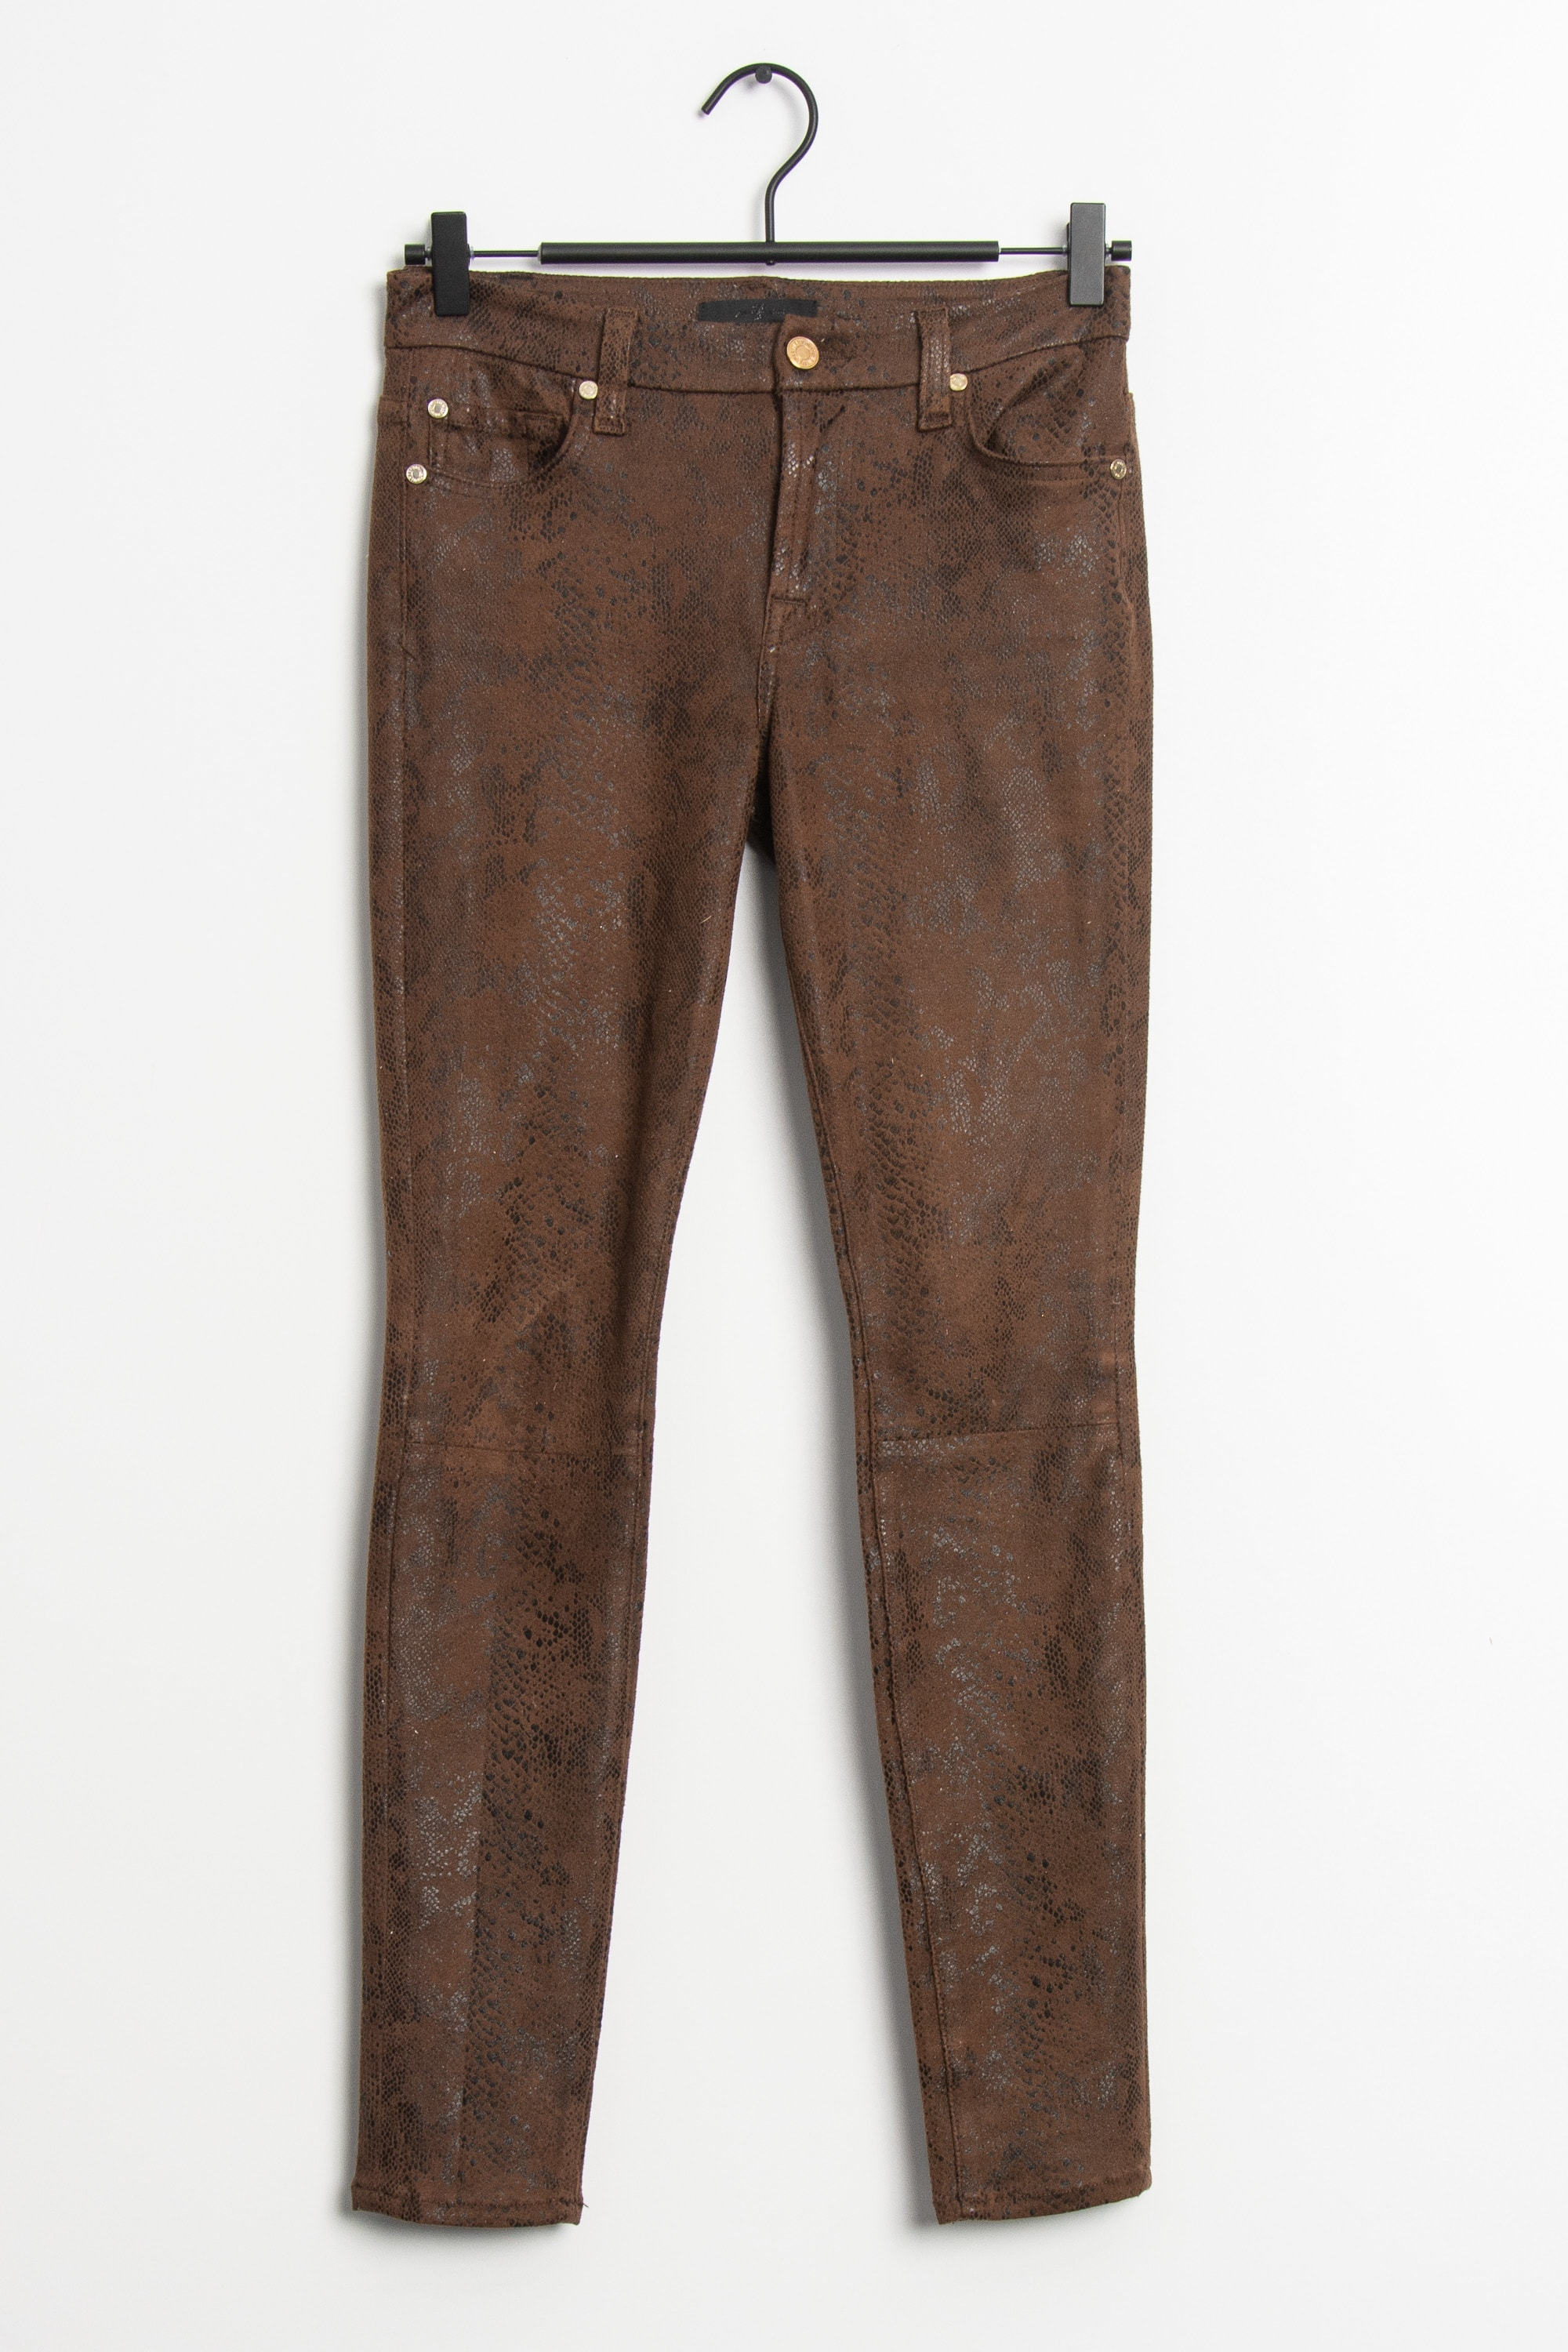 7 for all mankind Stoffhose Braun Gr.XS